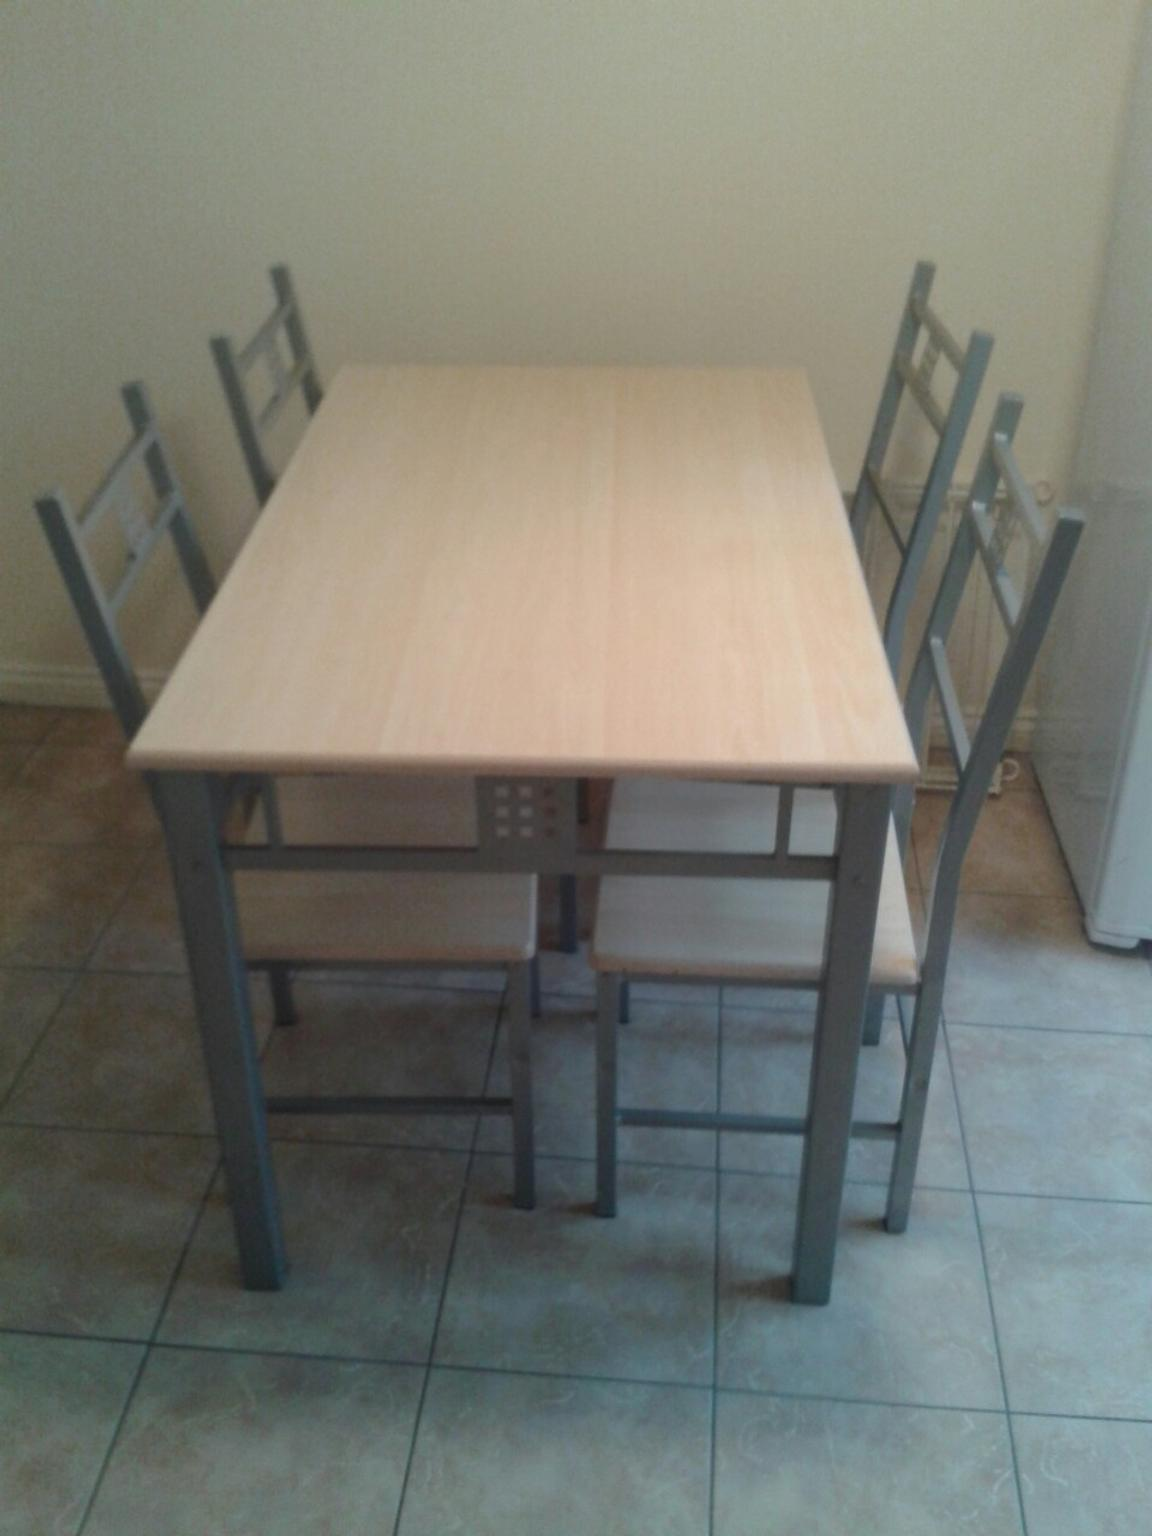 Used dining table and chairs x4 in LE4 Leicester for 163 40  : aspectwidth1200ampaspectheight630 from en.shpock.com size 1200 x 720 jpeg 54kB